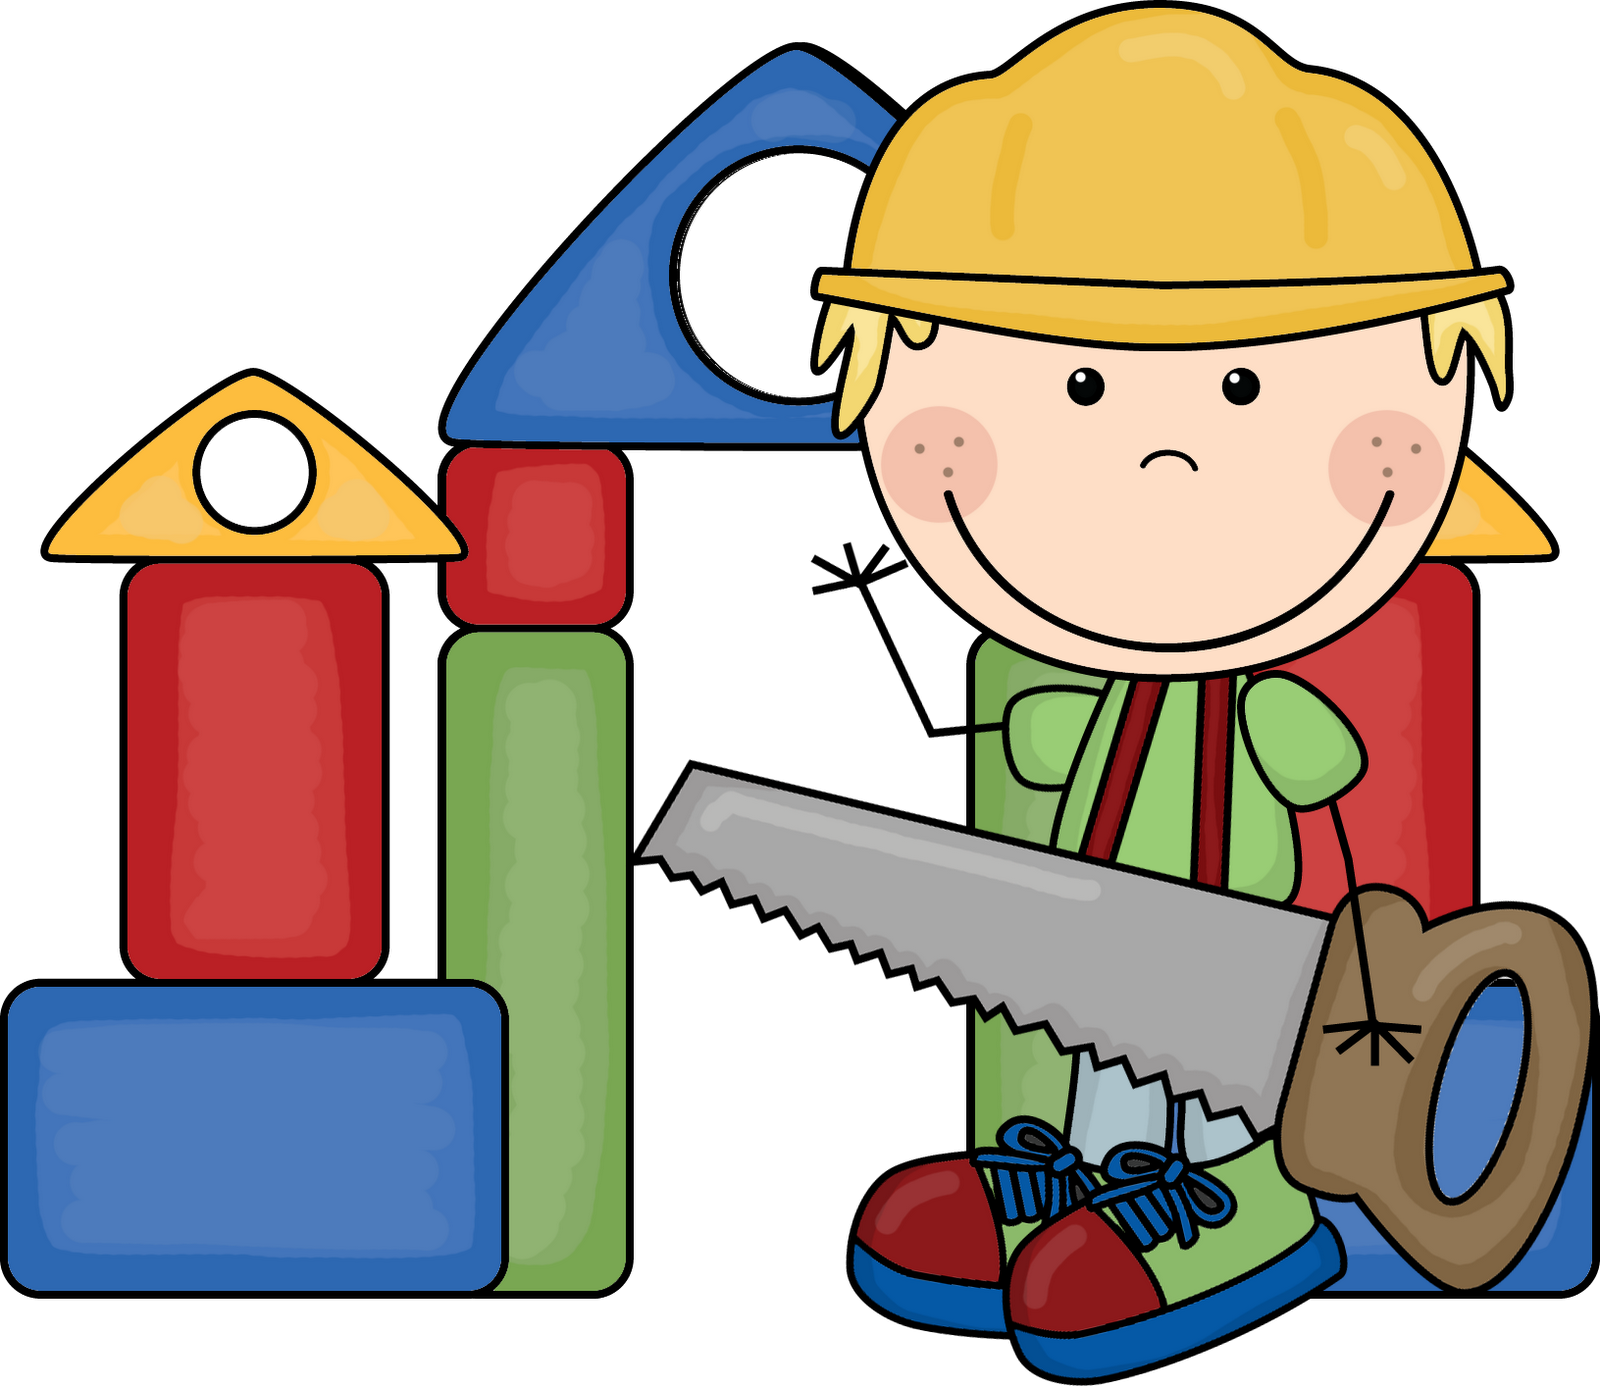 Materials book pinterest clip. R clipart kid